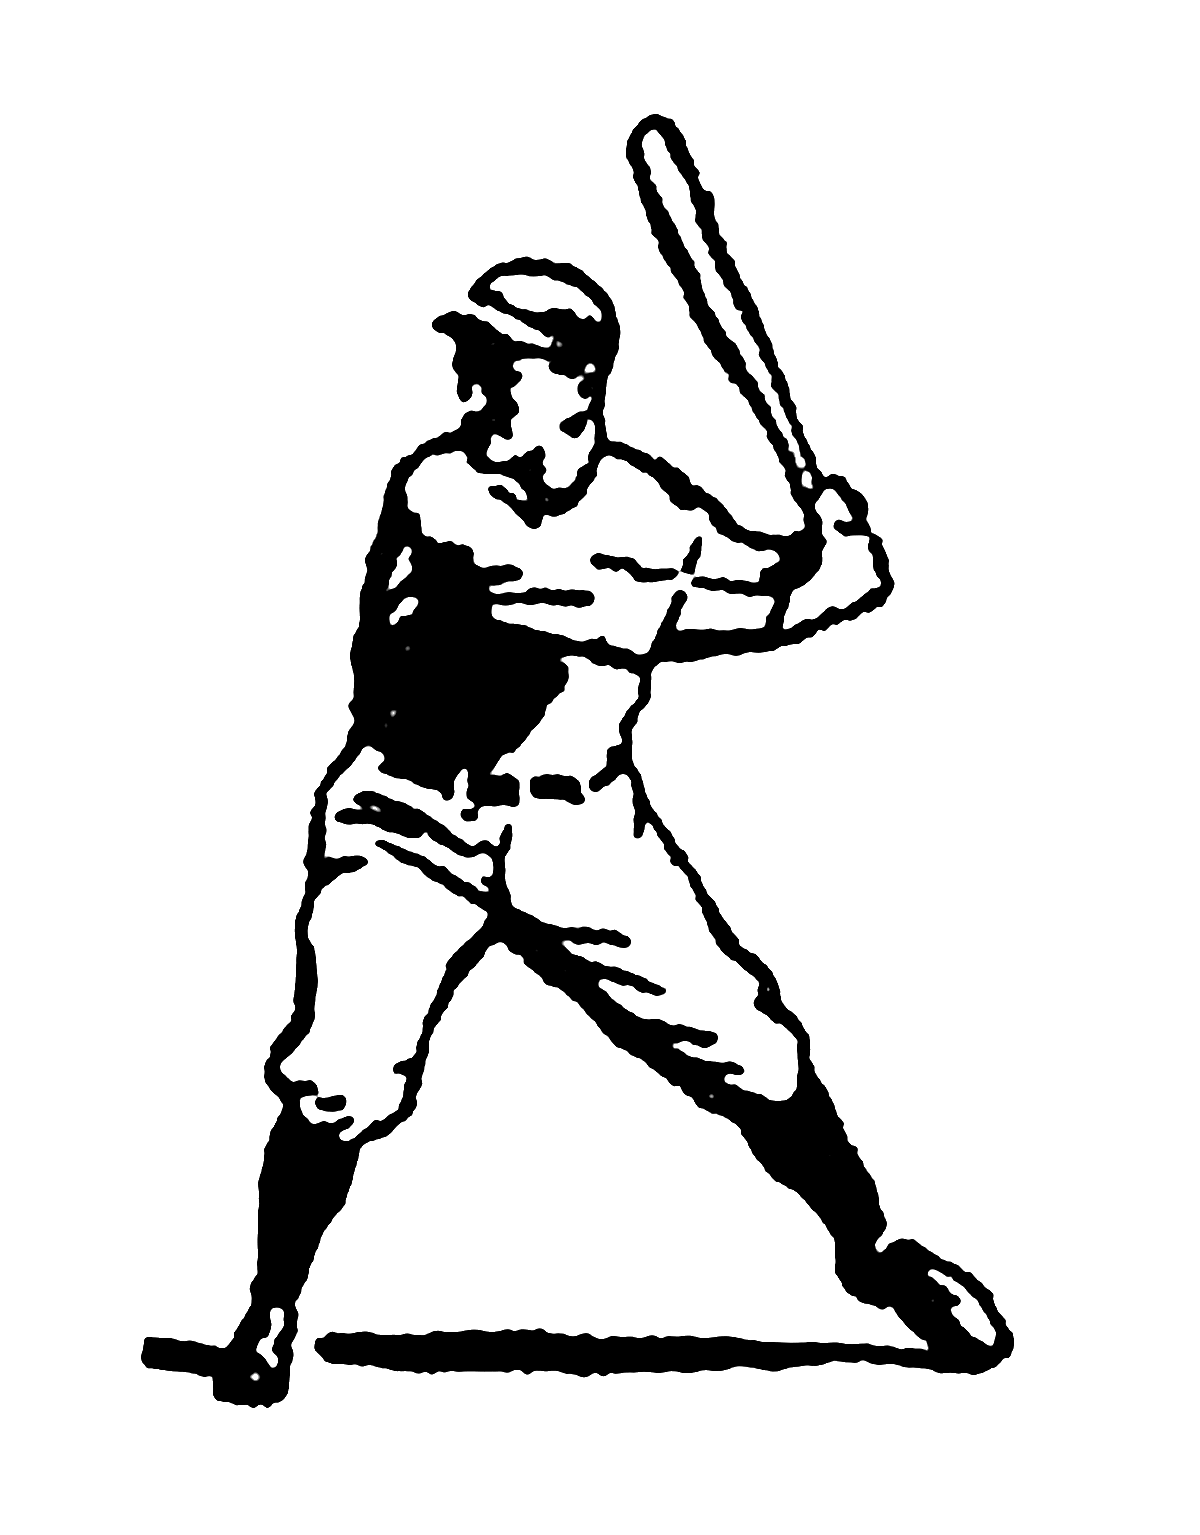 Batter baseball clipart vector freeuse Digital Stamp Design: Vintage Stock Sports Clip Art Illustrations ... vector freeuse